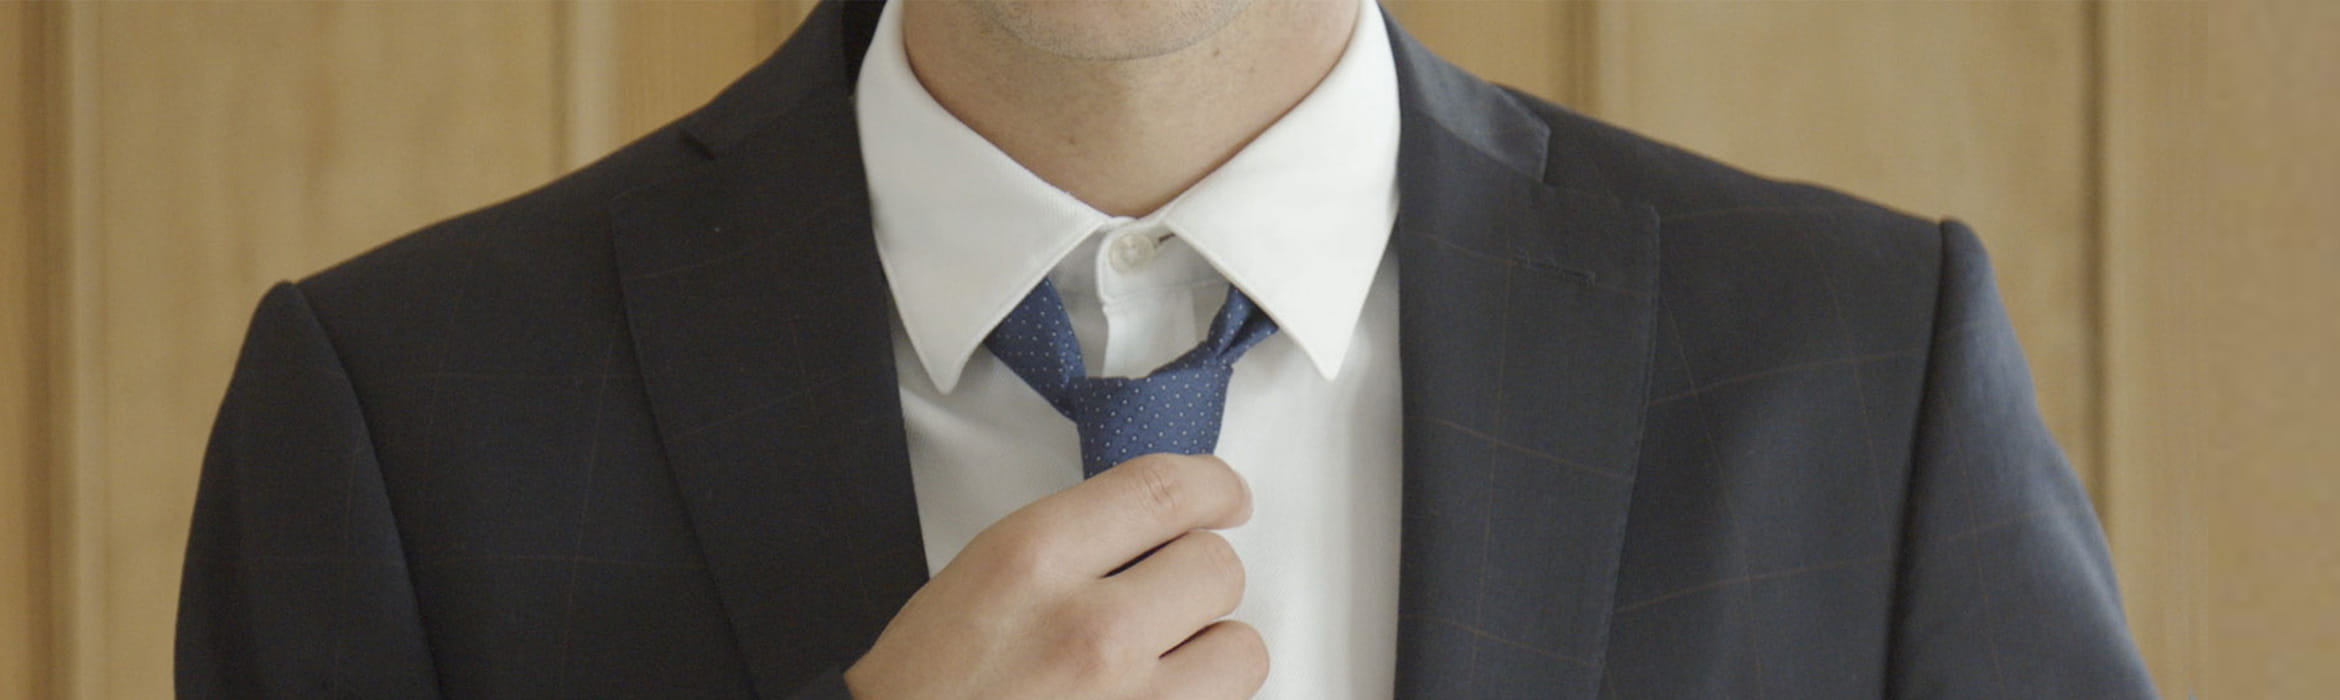 Man wearing a suit and tie